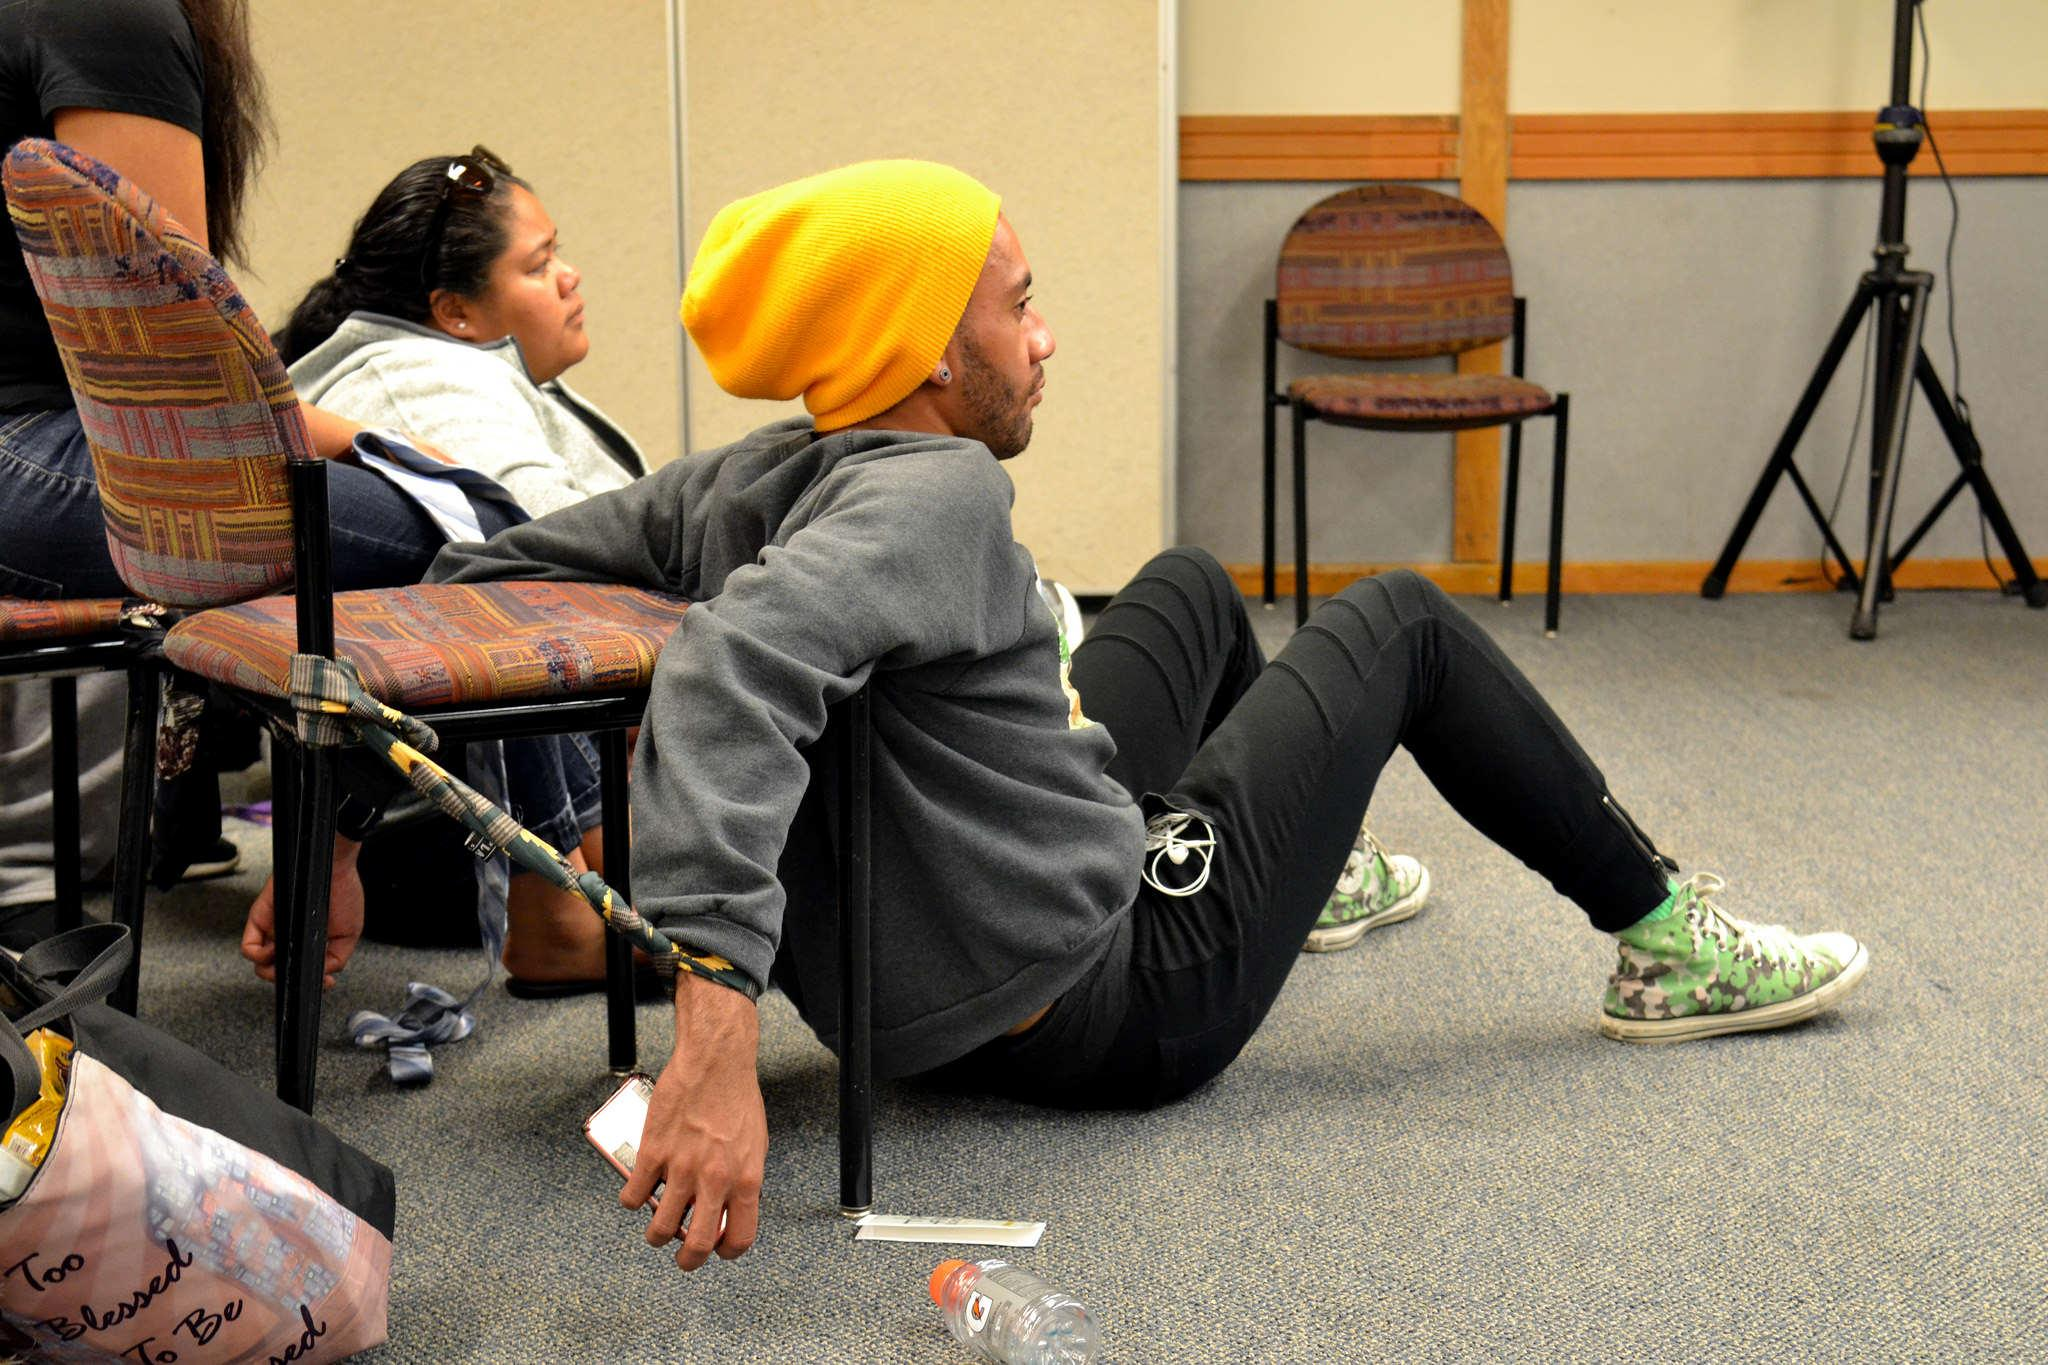 Spulu, a dance major, watches the workshop while still tied to his chair with neckties Wednesday, Oct. 29, 2014.